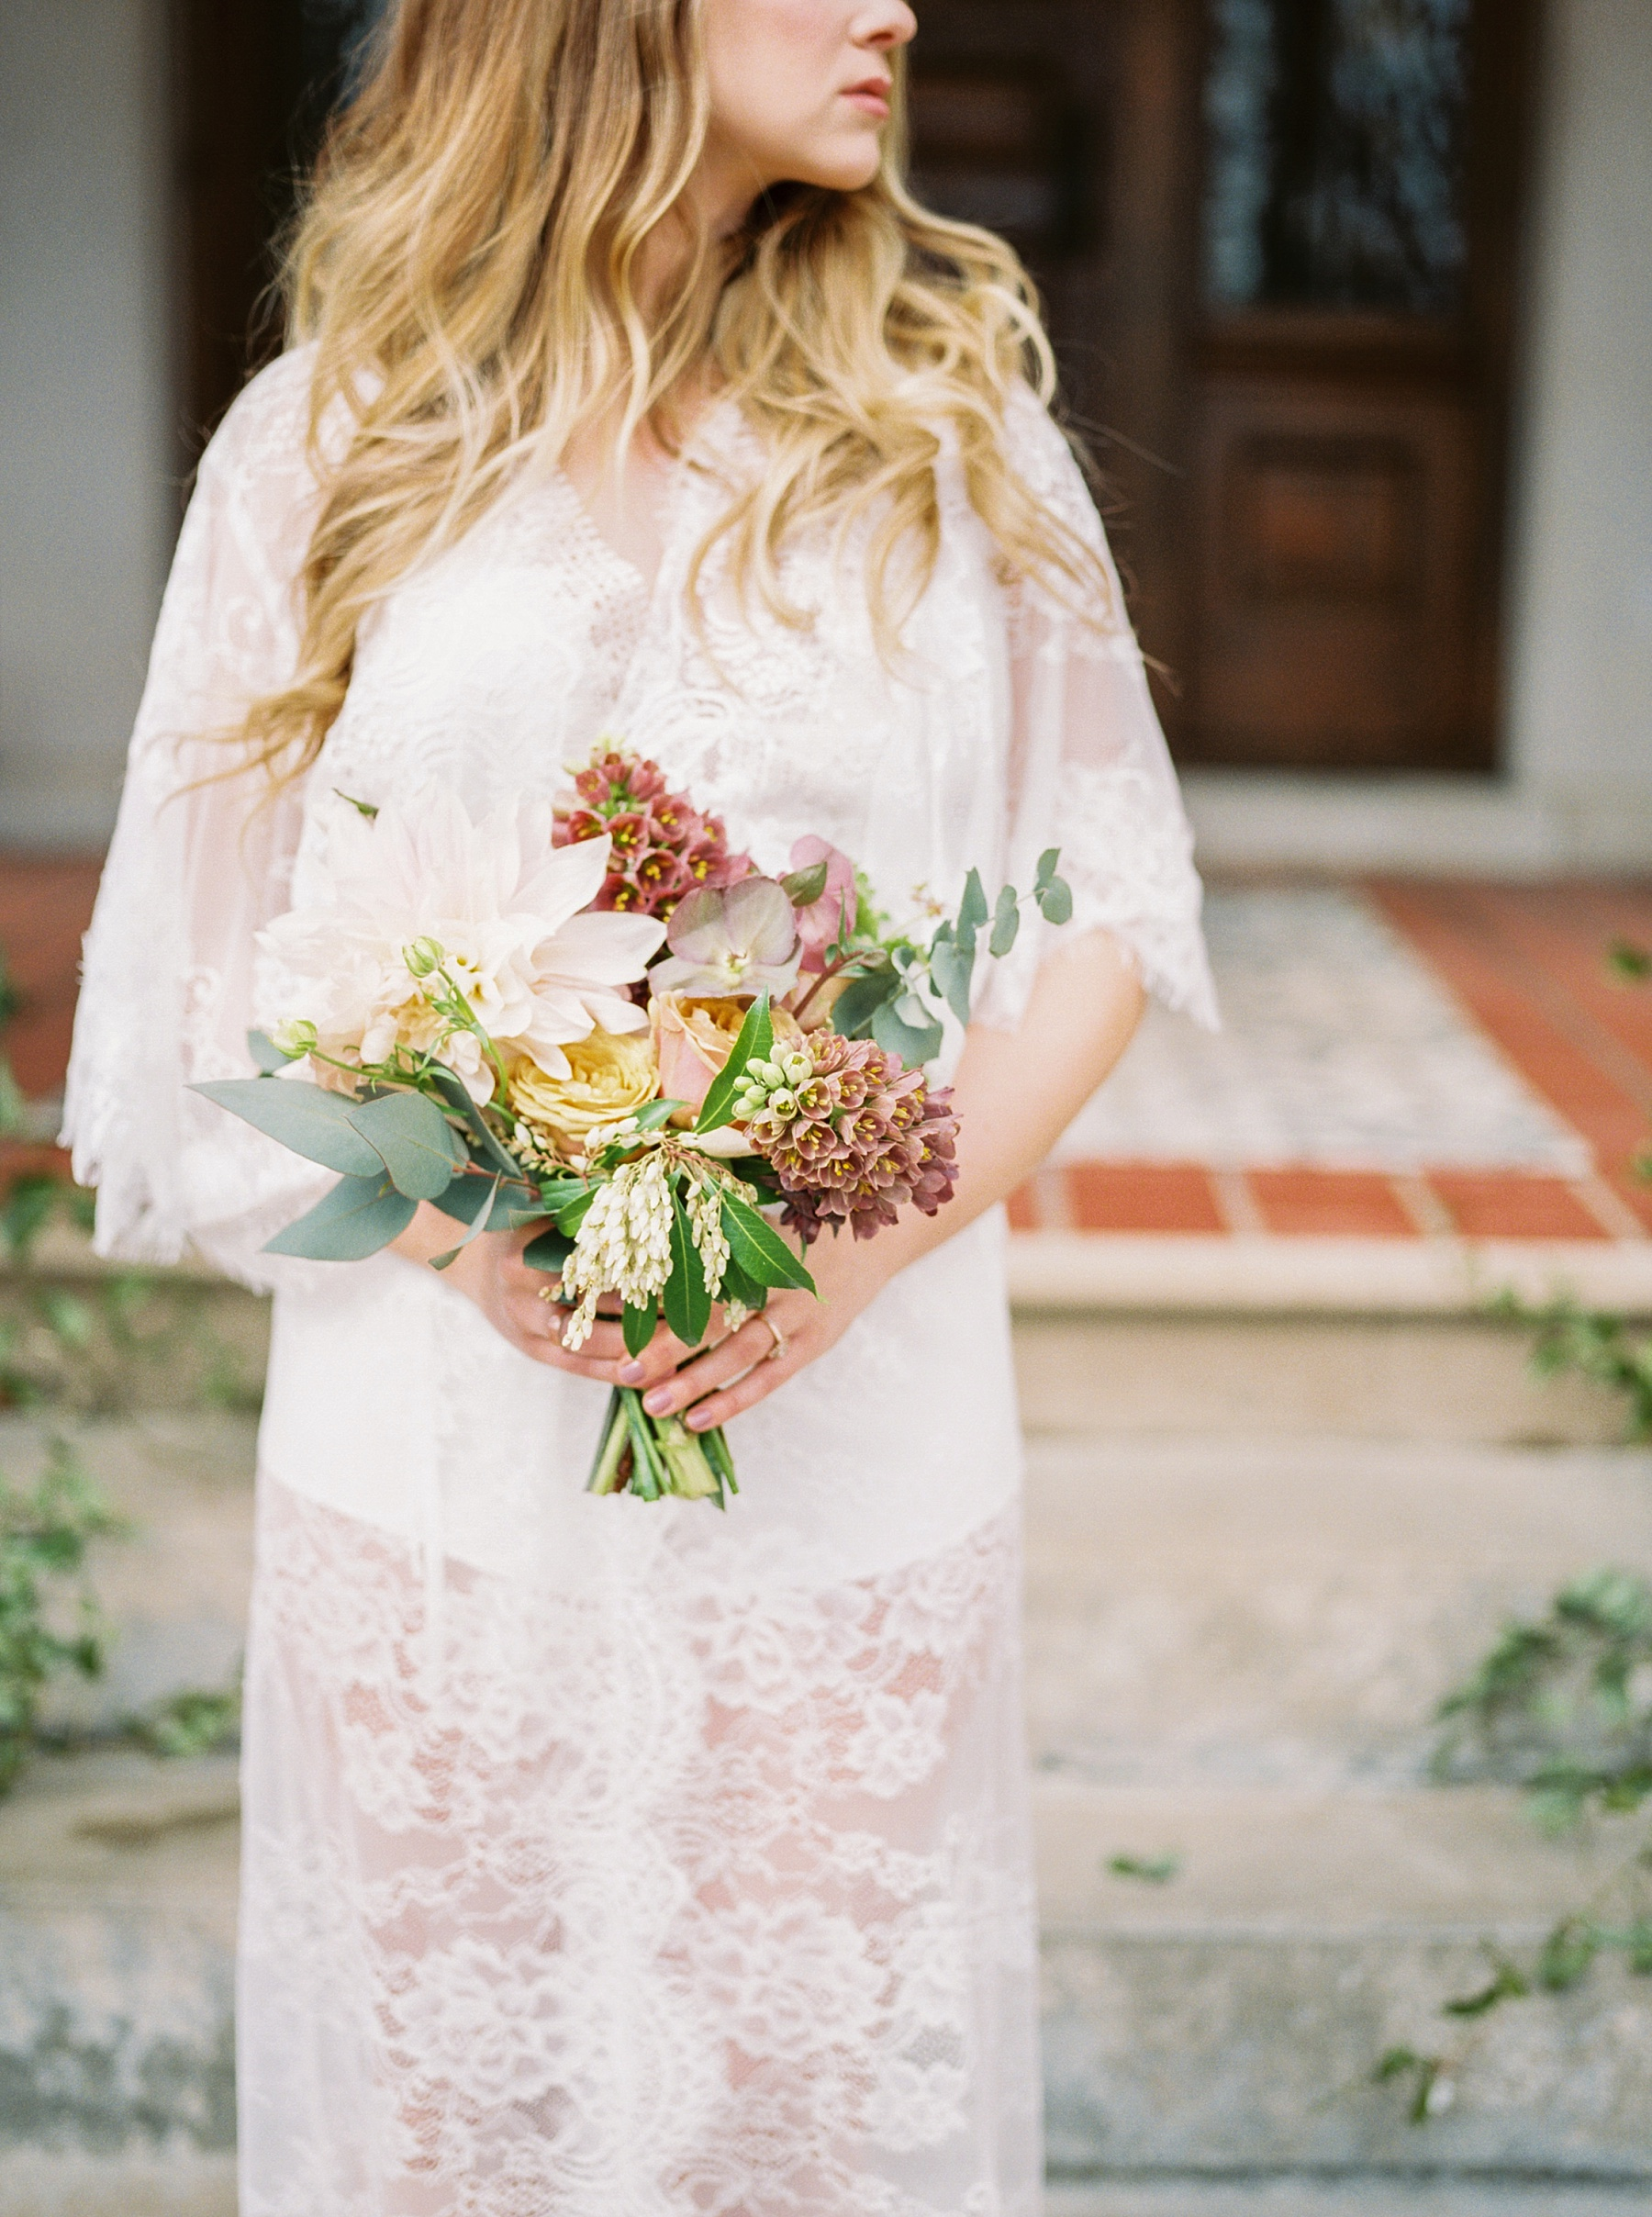 Natural, Intimate, and Organic Bridal Session on Steps of Century Old Bed and Breakfast by Kelsi Kliethermes Photography Best Missouri and Maui Wedding Photographer_0012.jpg